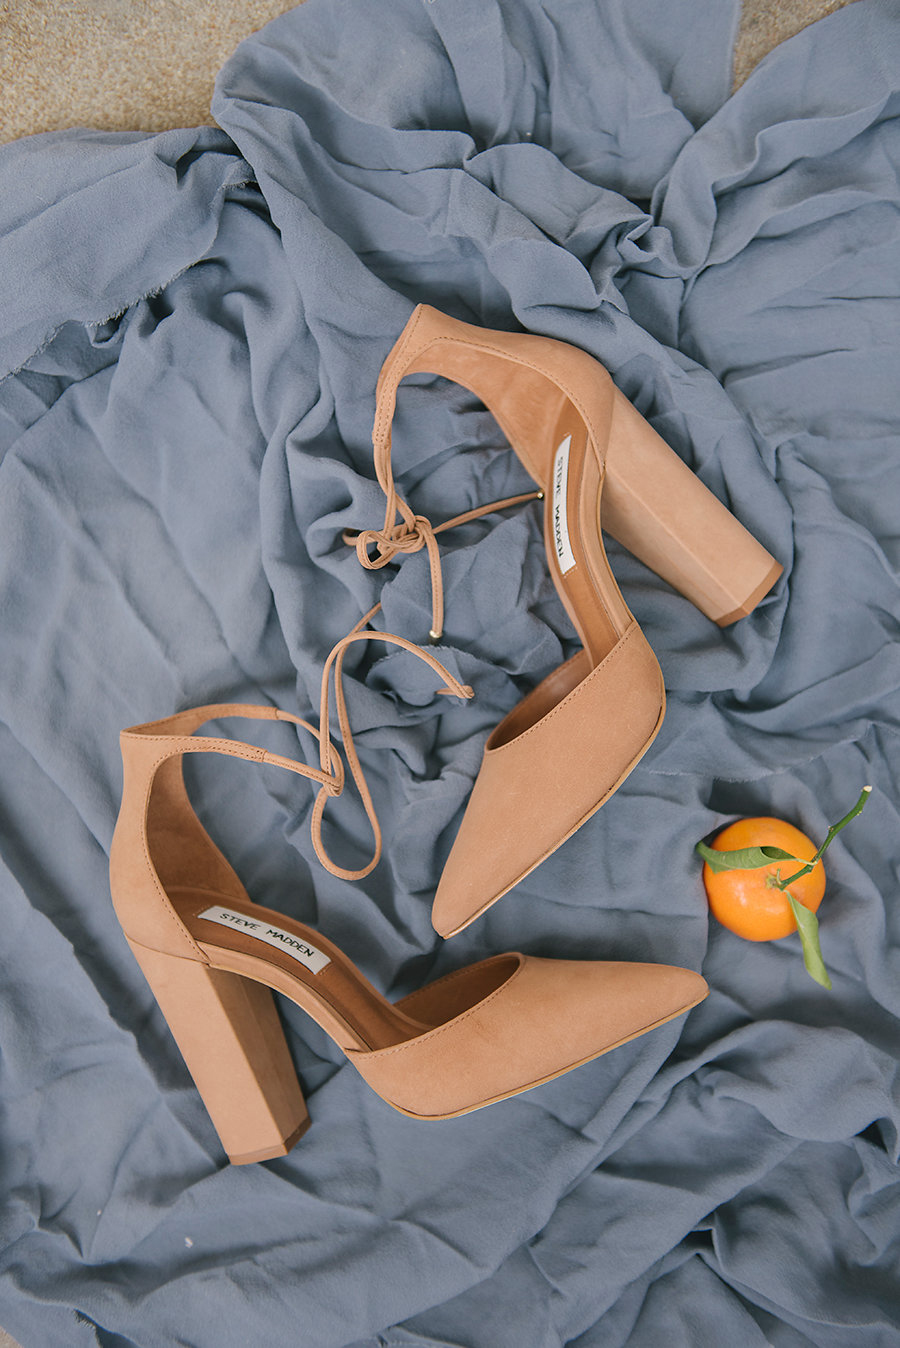 nude wedding shoes - photo by Ashlee Brooke Photography http://ruffledblog.com/summertime-citrus-wedding-inspiration